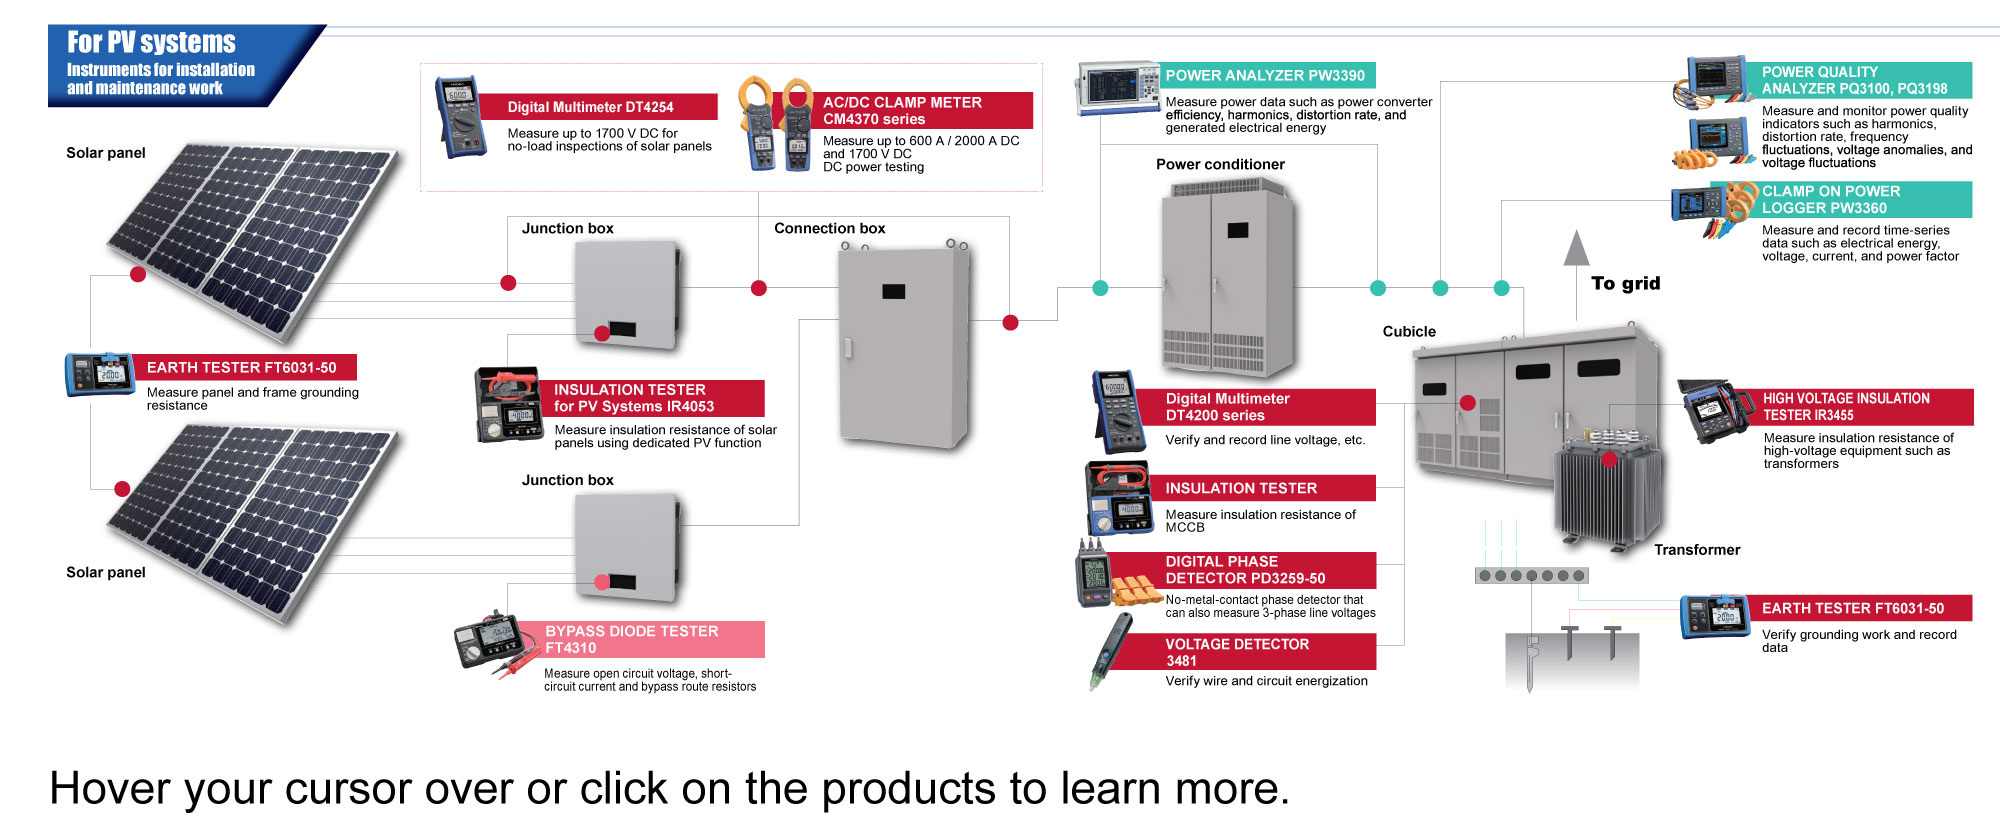 Solutions for PV Systems